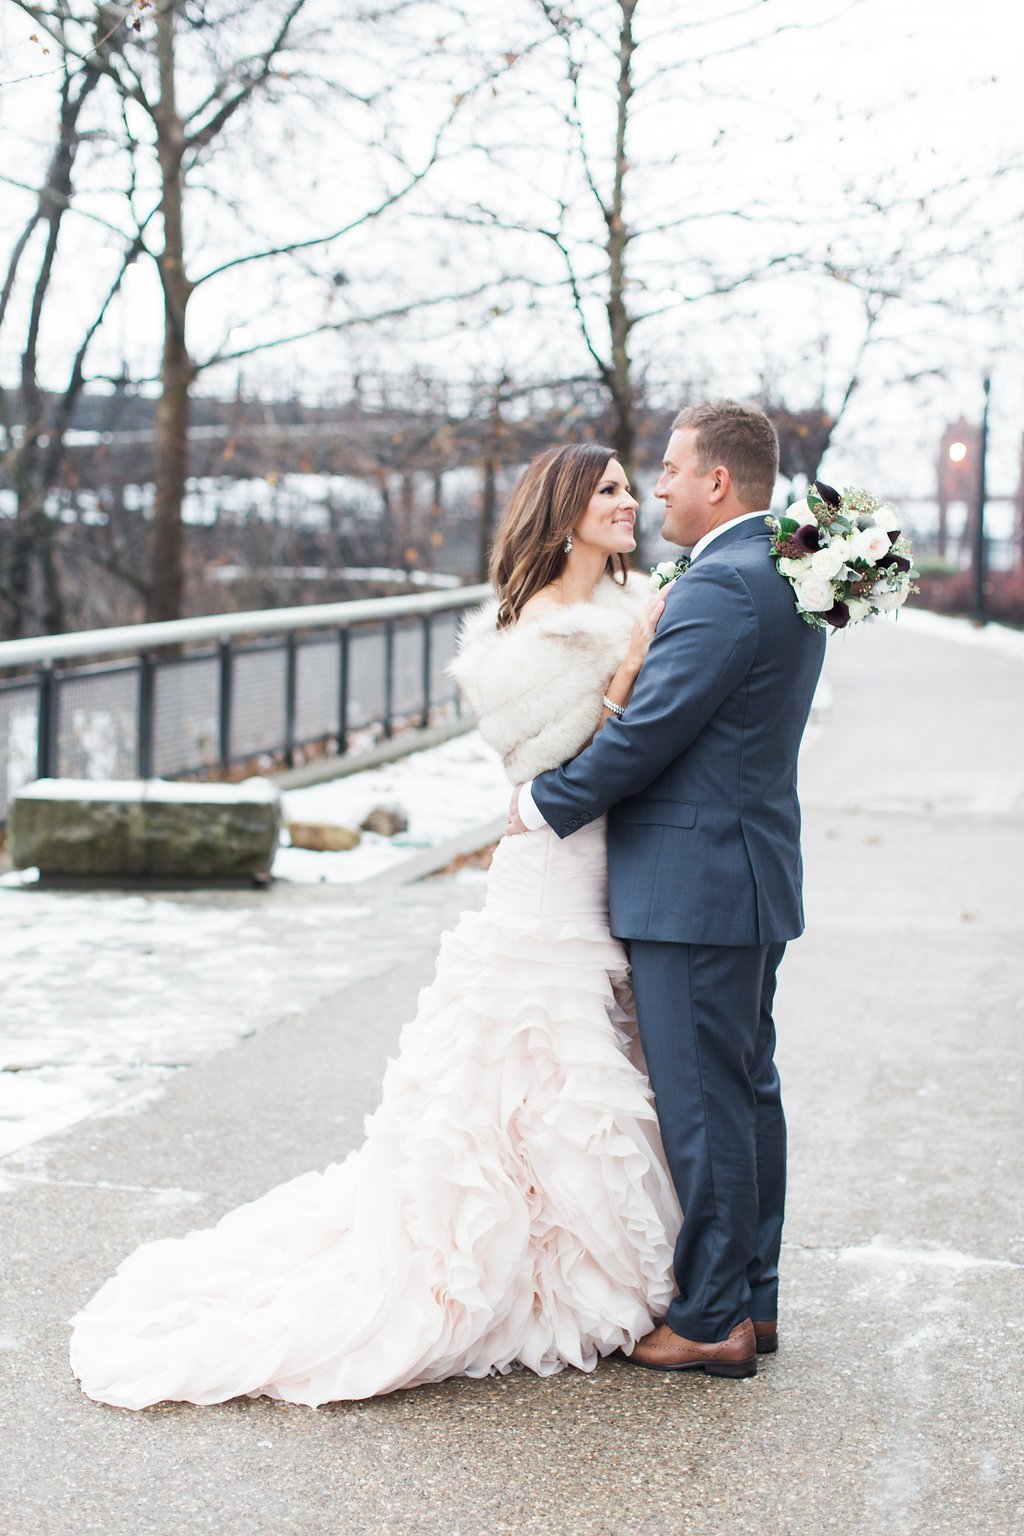 Bride wearing a blush pink wedding gown and fur shawl groom in navy blue suit